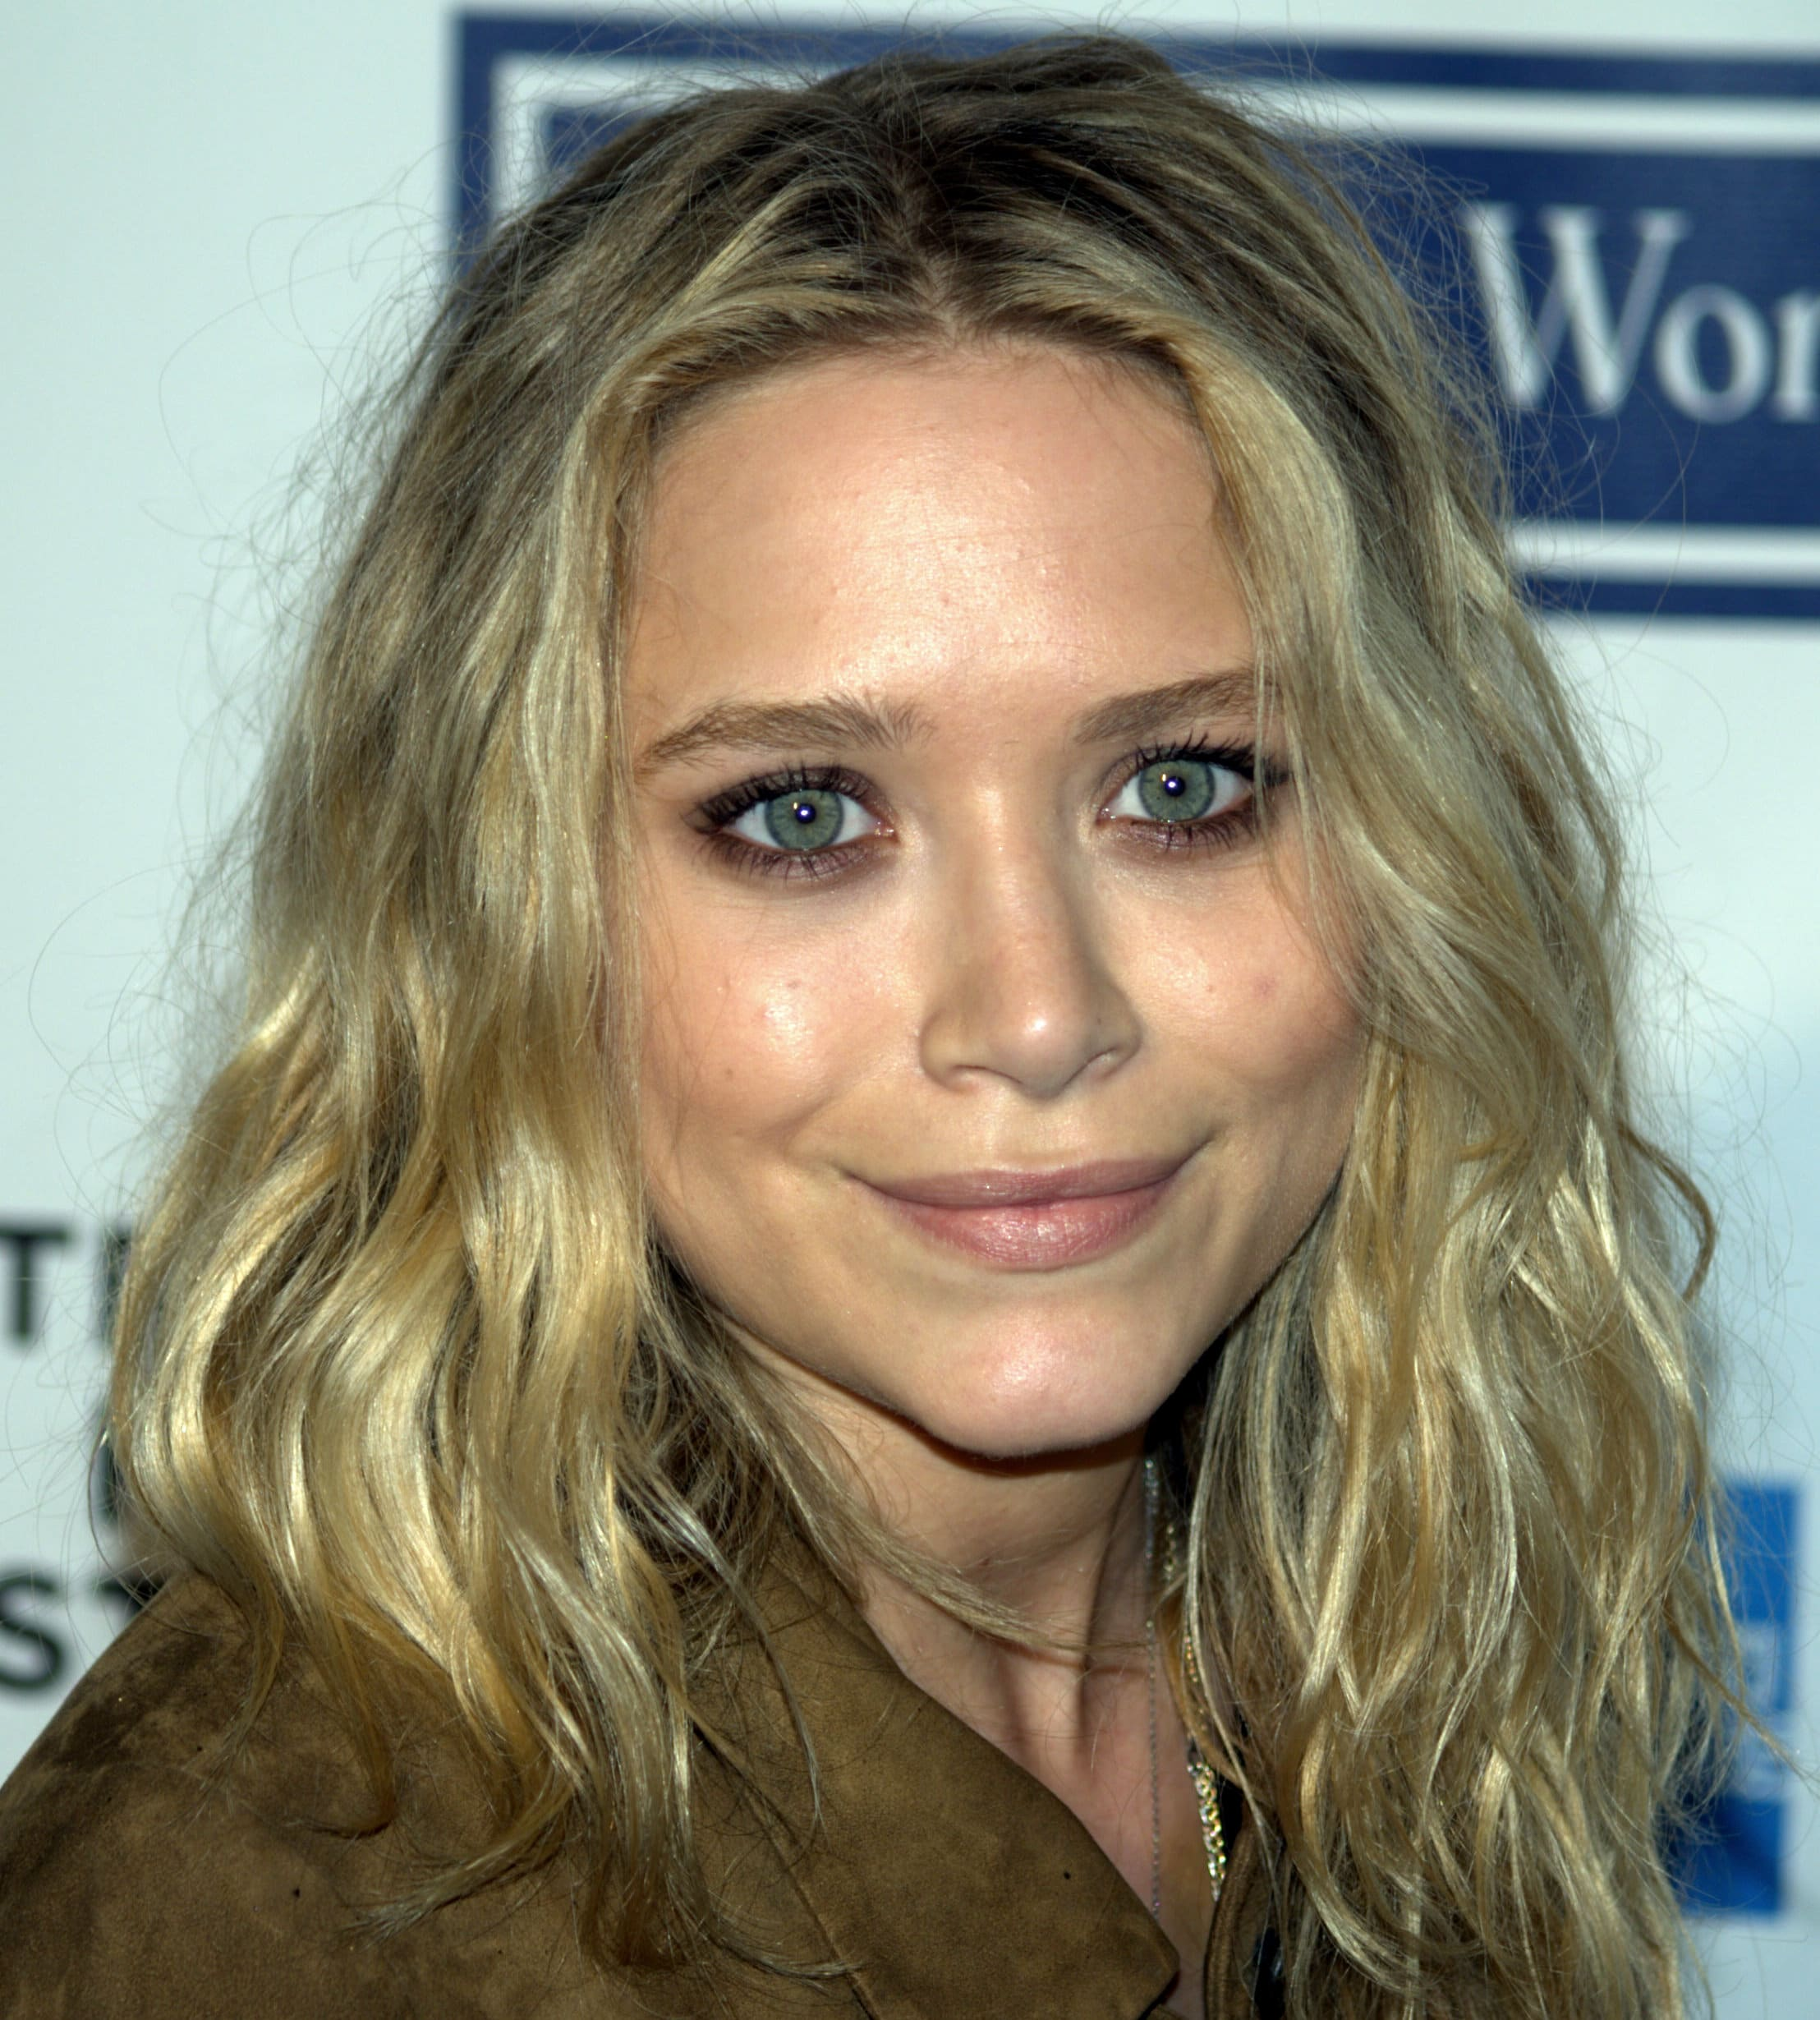 Mary-Kate Olsen American Fashion designer, Actress and Producer